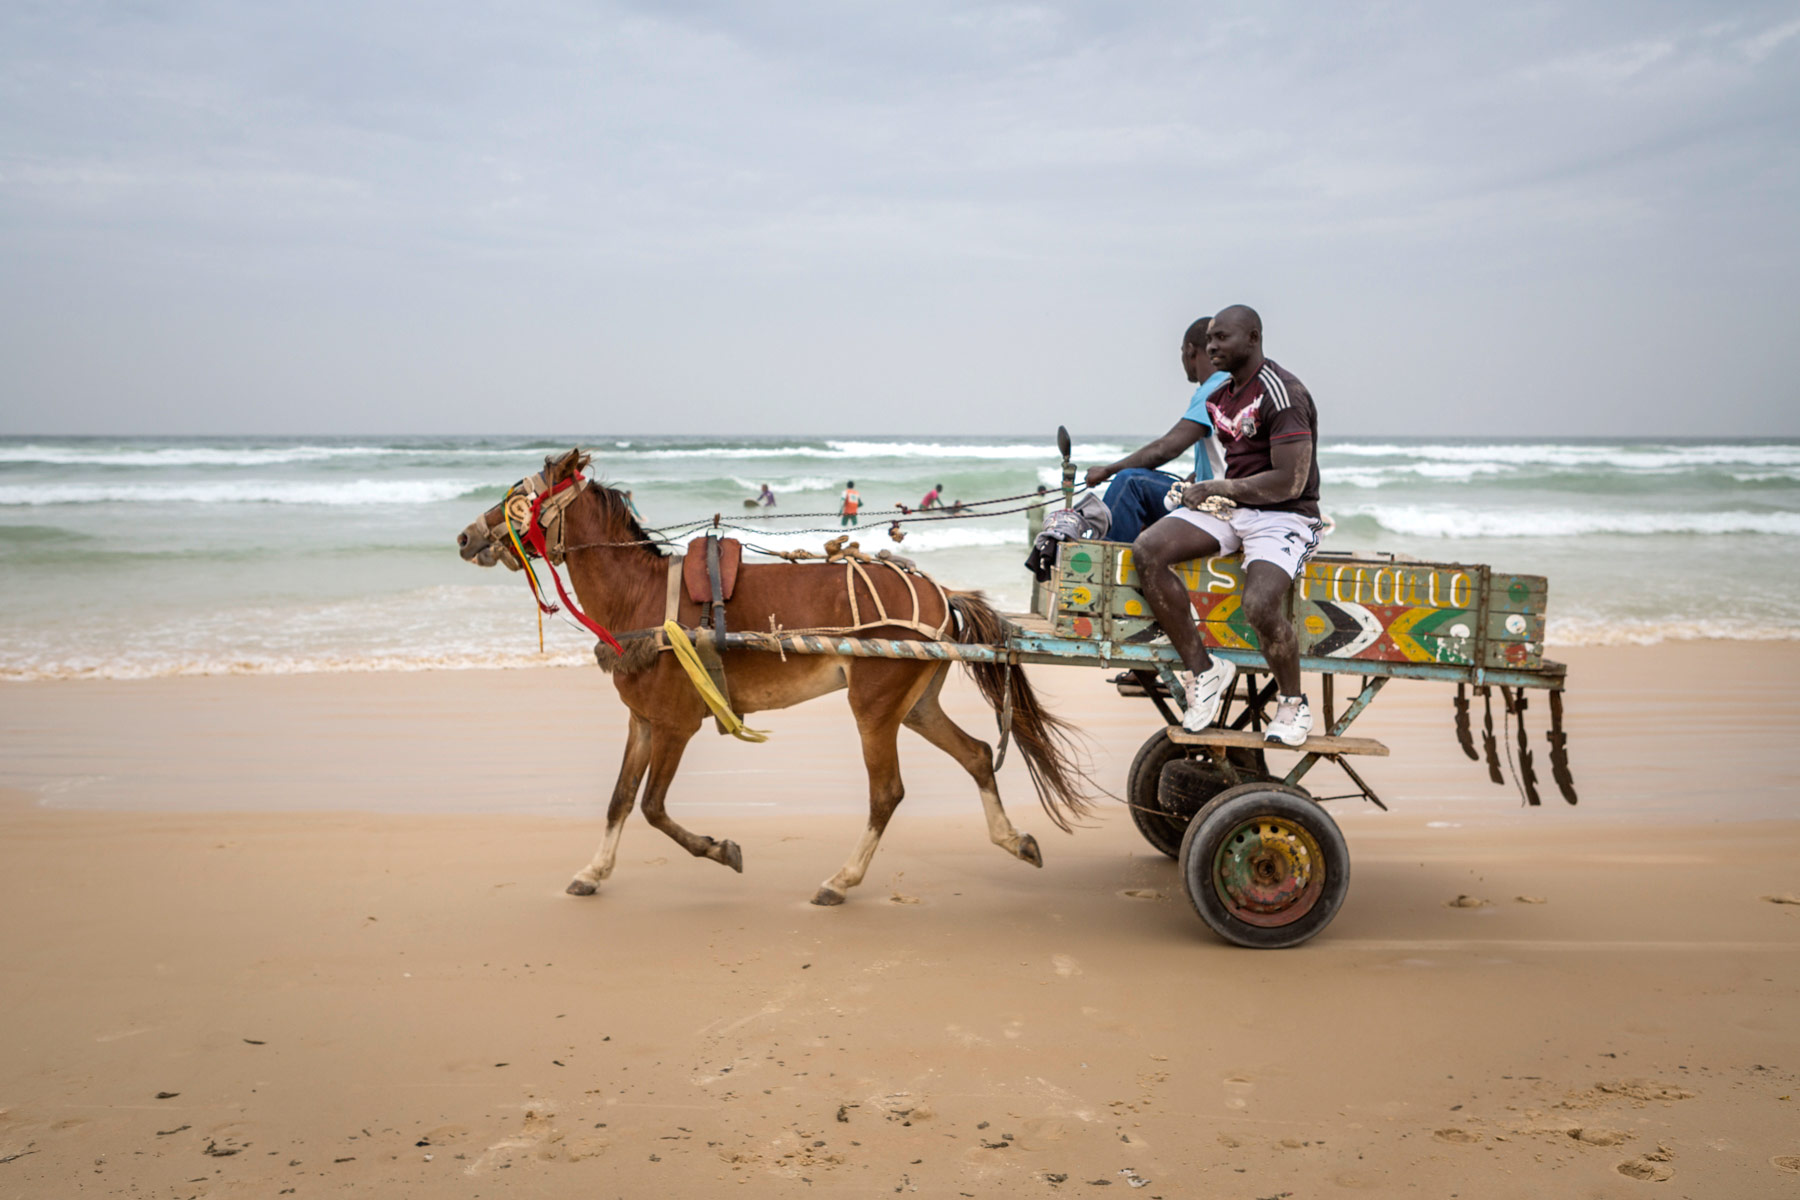 donkey-cart-on-beach_BobbiLe-Ba-Photography_2015-111